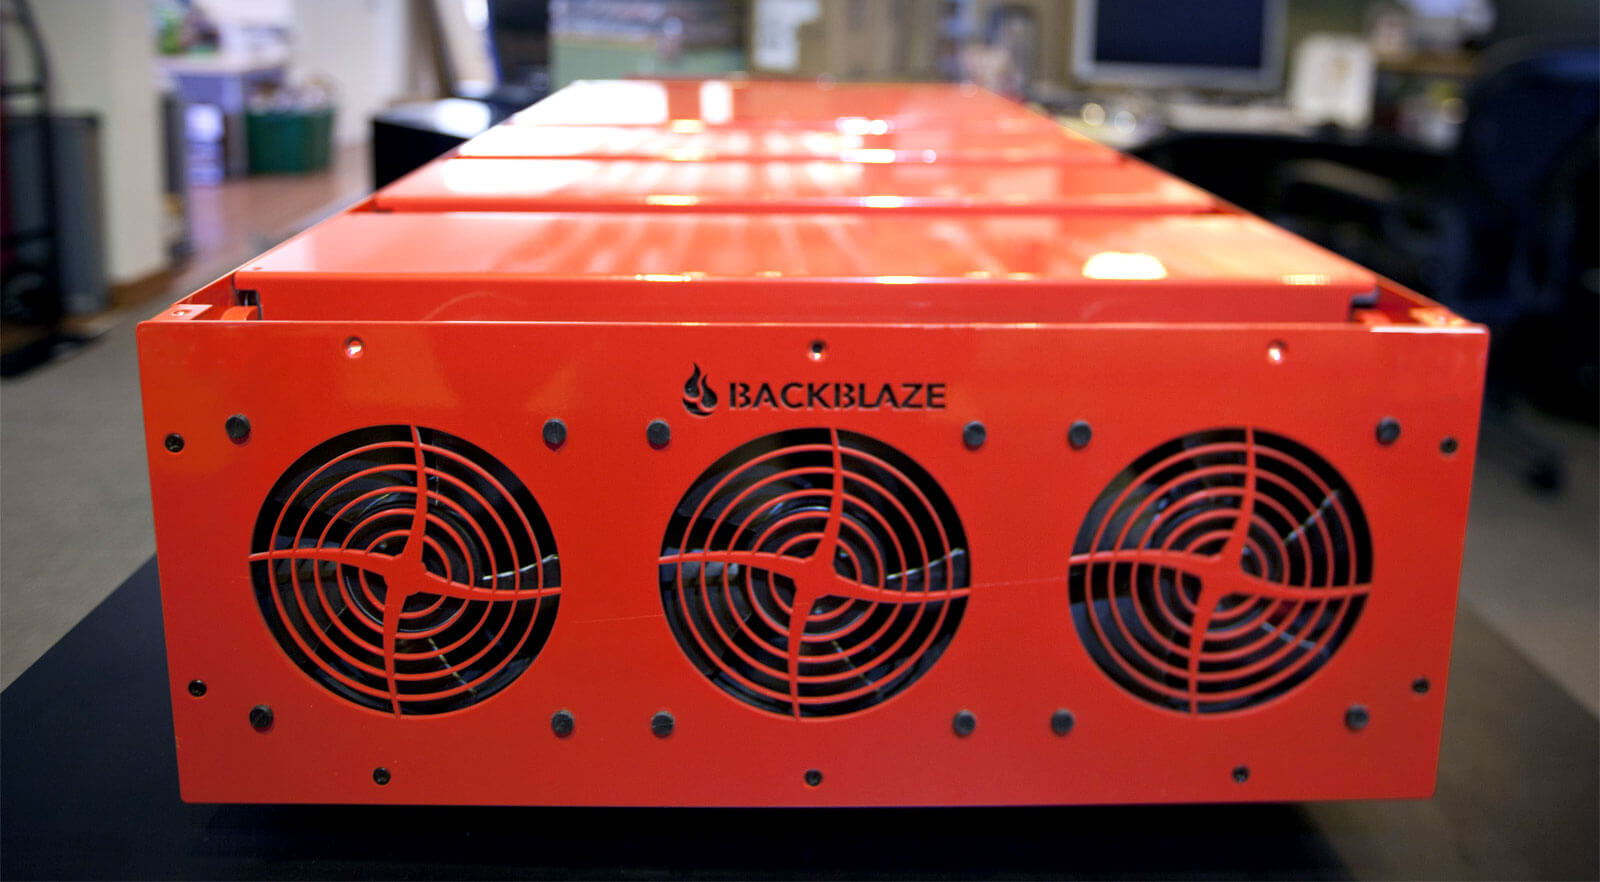 Backblaze 5.0 increases restore/access speed, adds image preview, and more